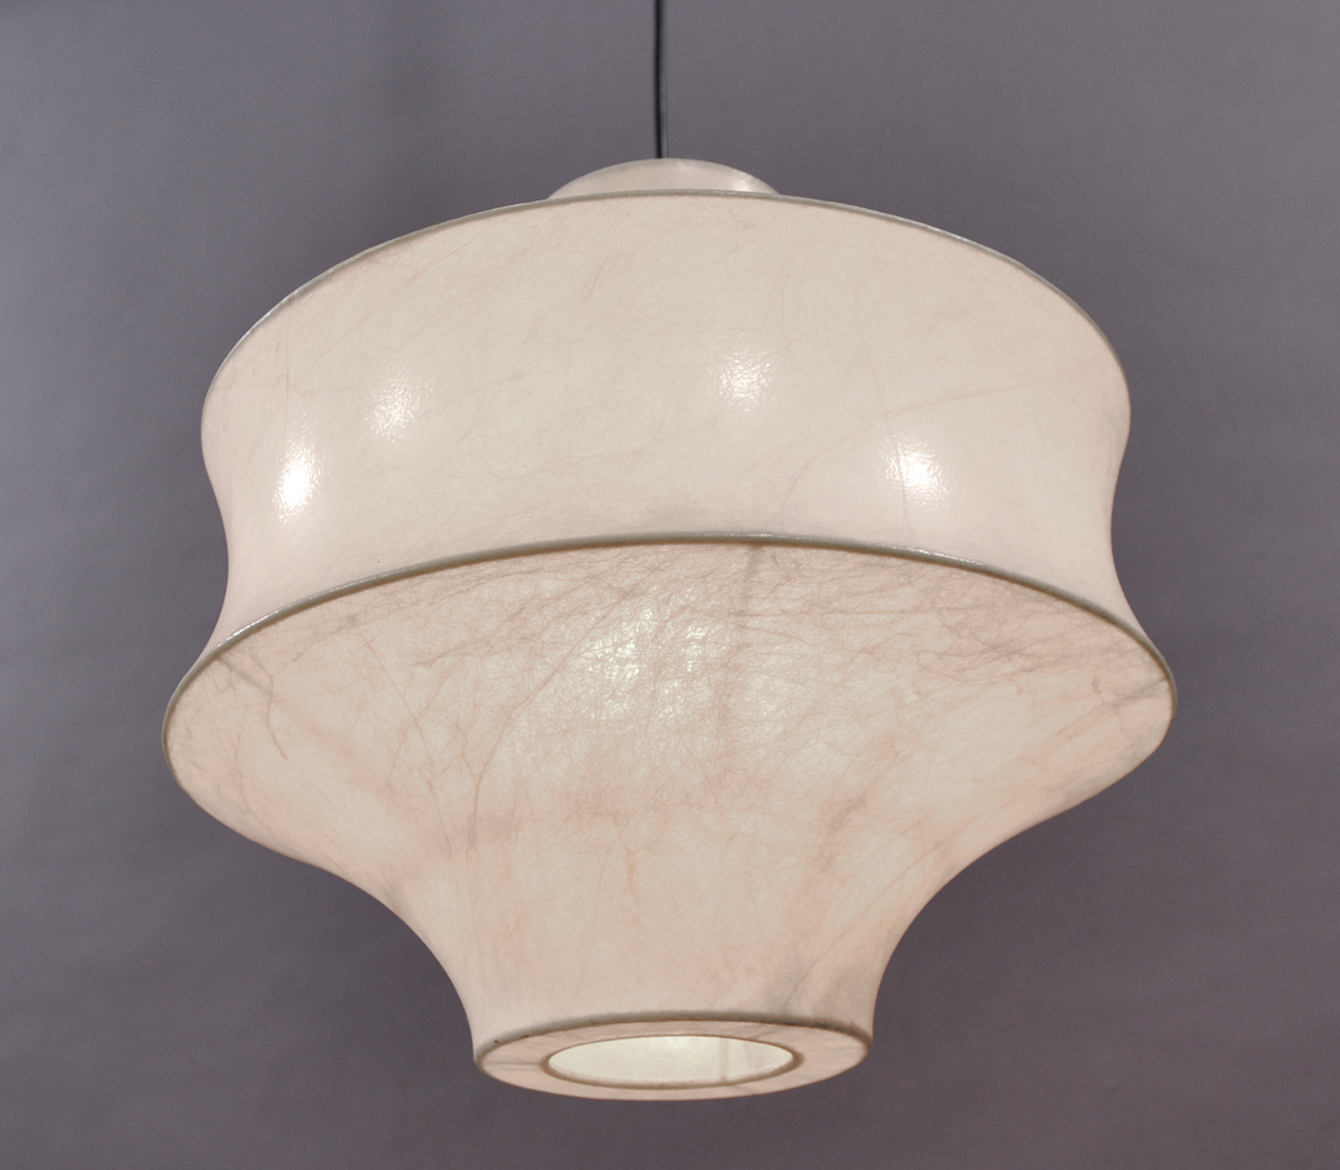 Bonderup and Thorup hanging lamp